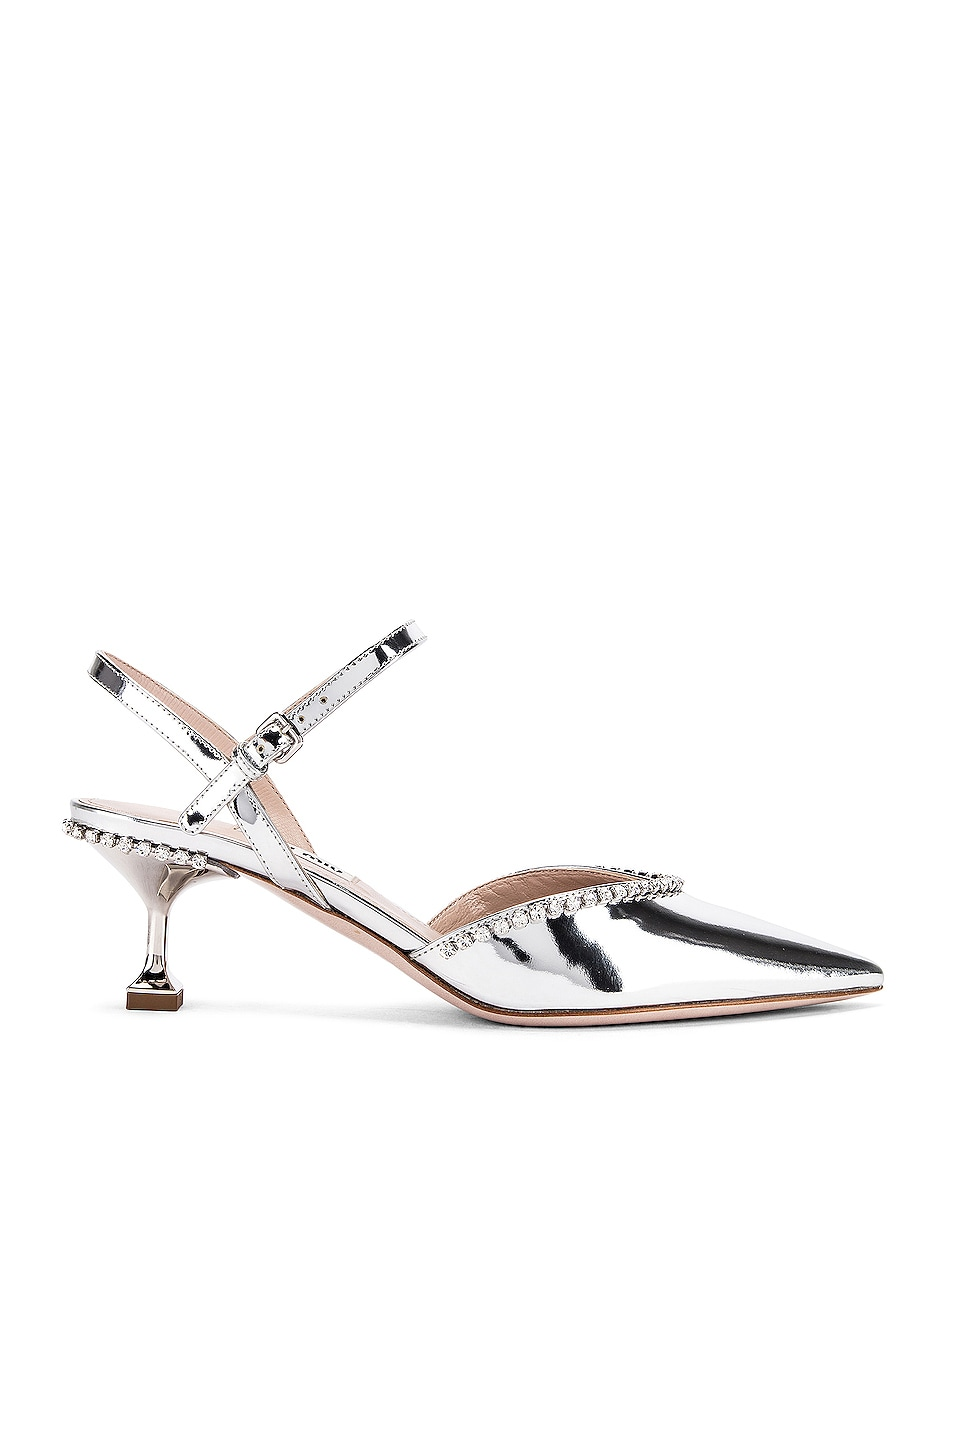 Image 1 of Miu Miu Ankle Jewel Pumps in Silver